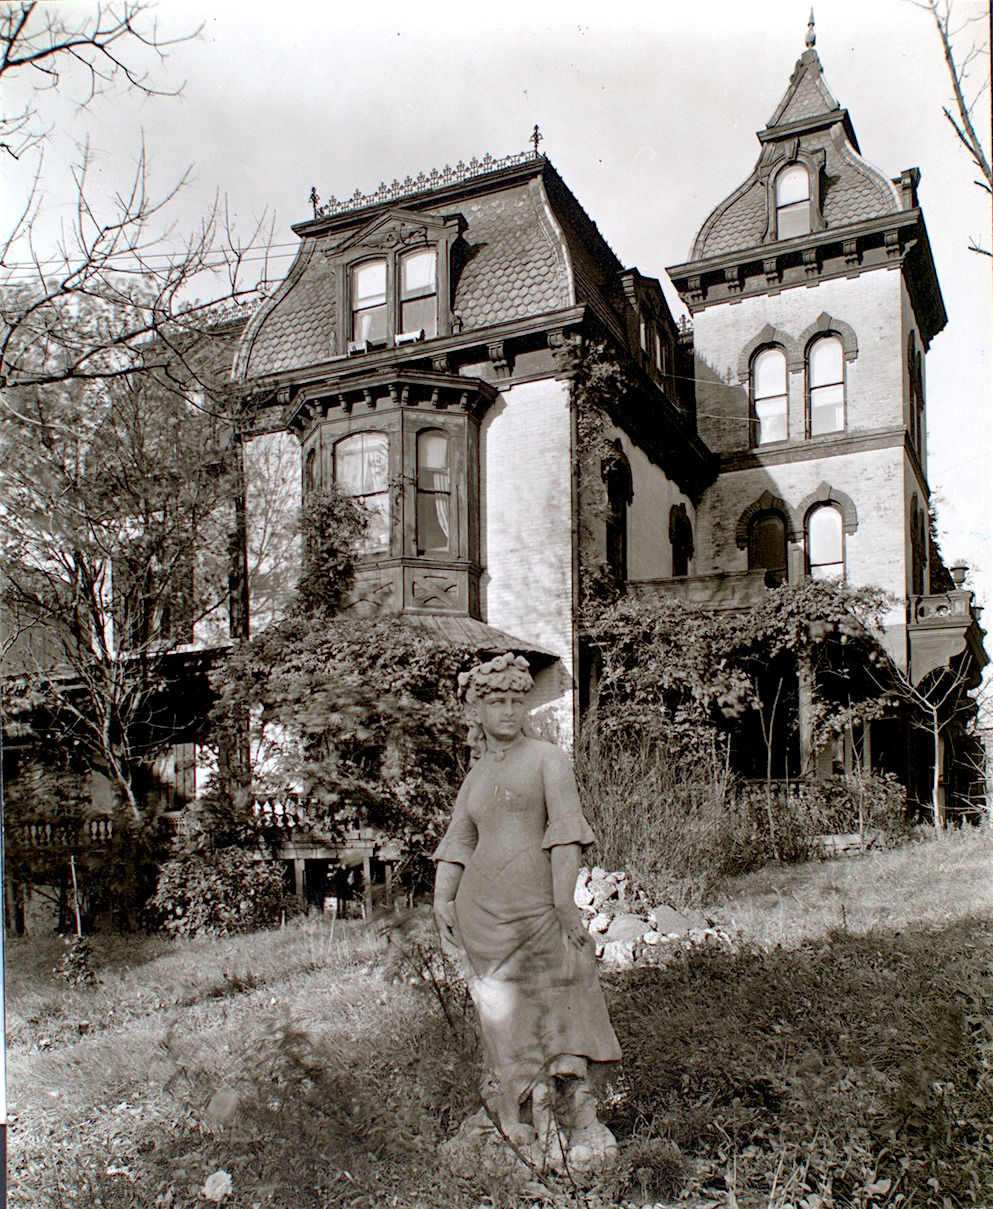 But Because This Addams Family Esque Mansion And Its Grounds Reminiscent Of Grey Gardens Near Riverside Drive 158th Street Bit The Dust In 1940s